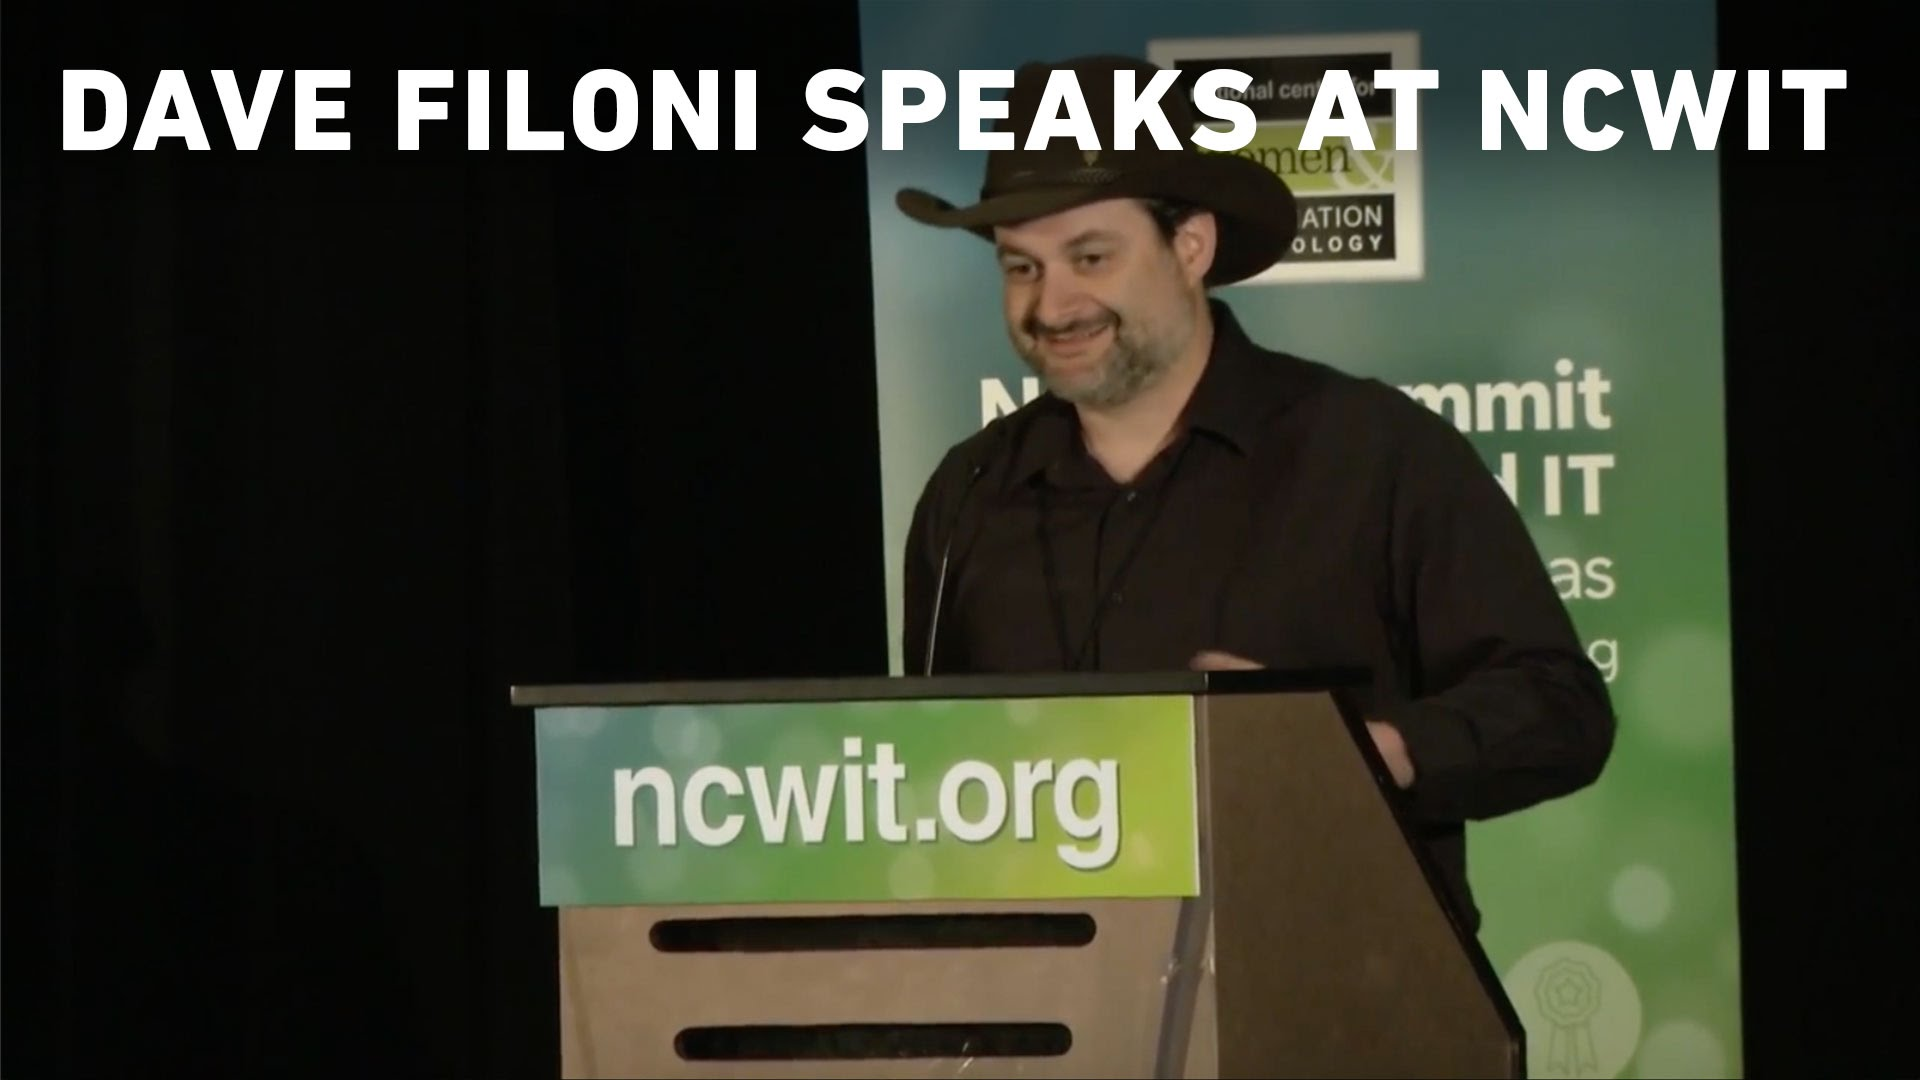 Dave Filoni Speaks at the National Center for Women & Information Technology